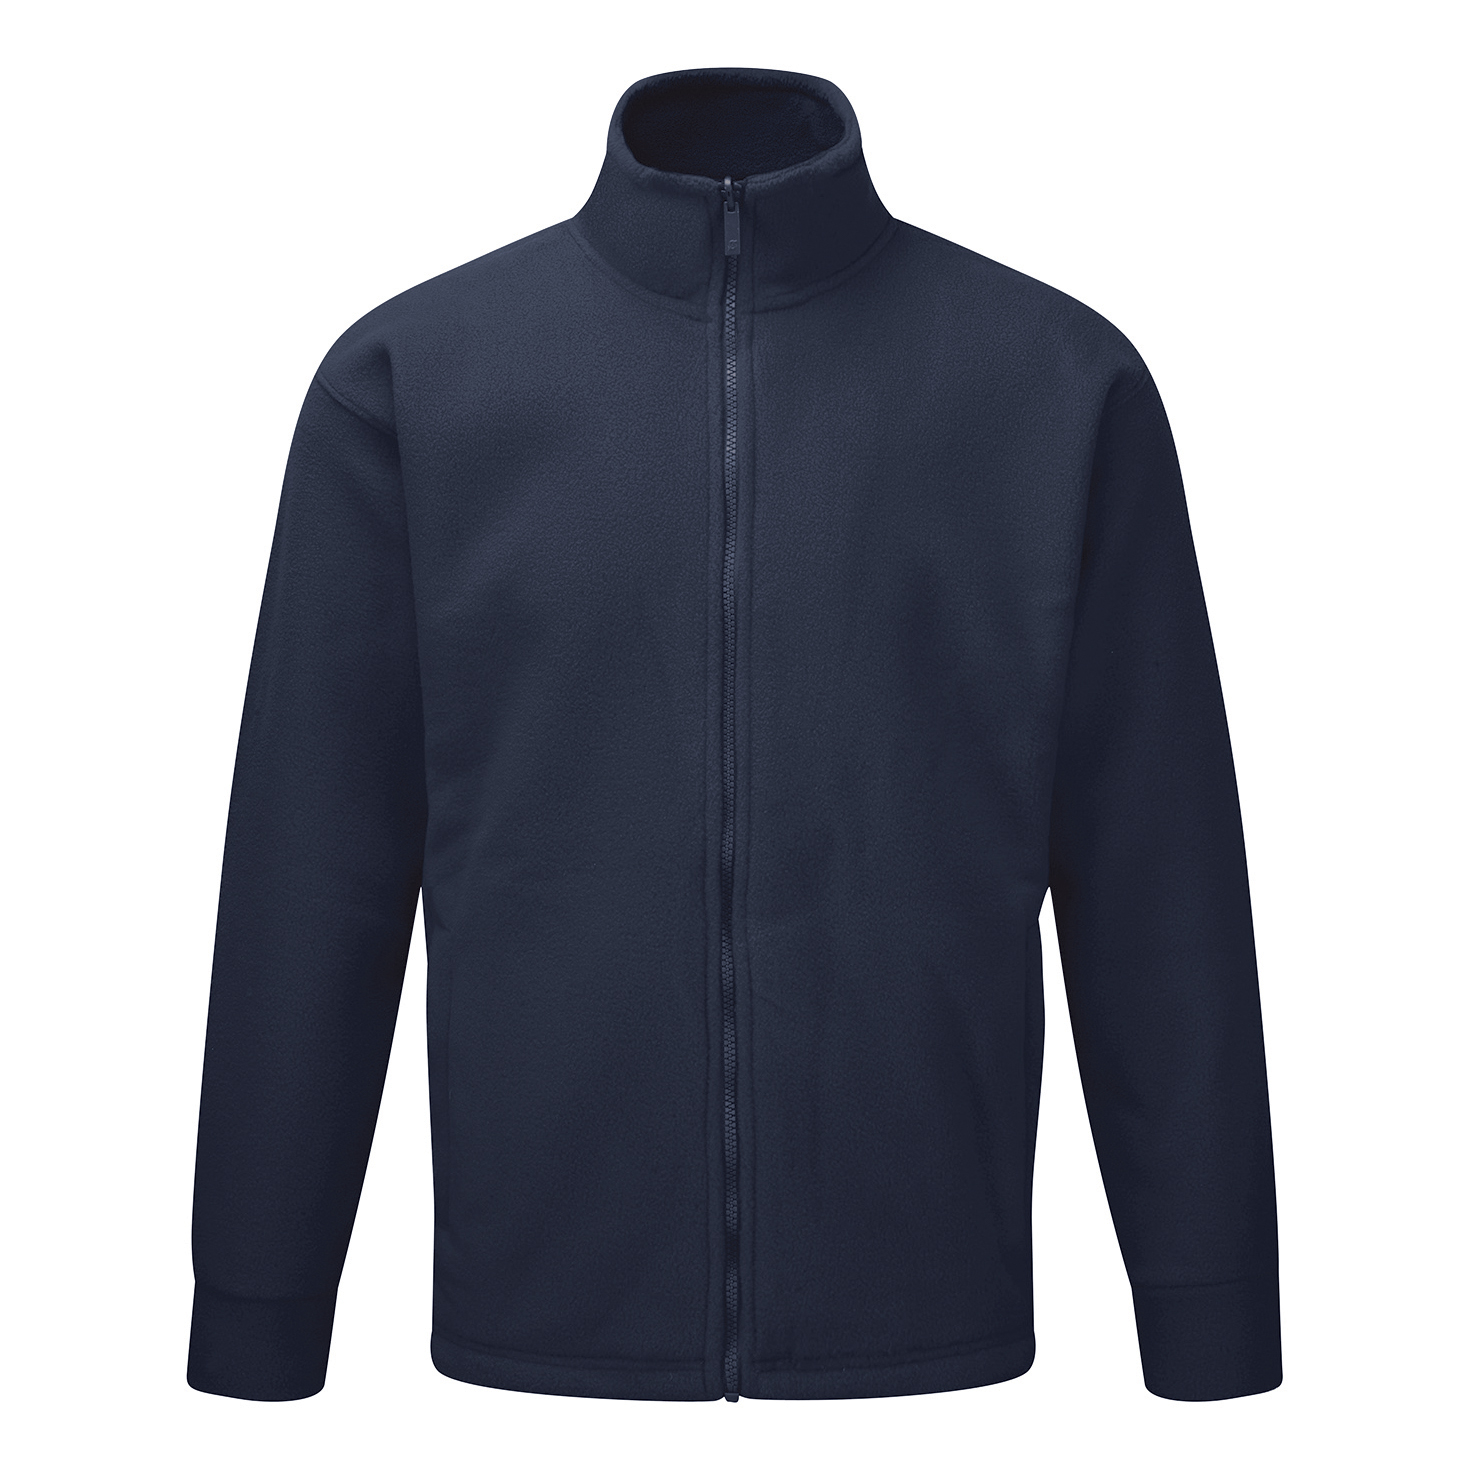 Fleeces Classic Fleece Jacket Elasticated Cuffs Full Zip Front Large Navy Blue Ref FLJNL *1-3 Days Lead Time*